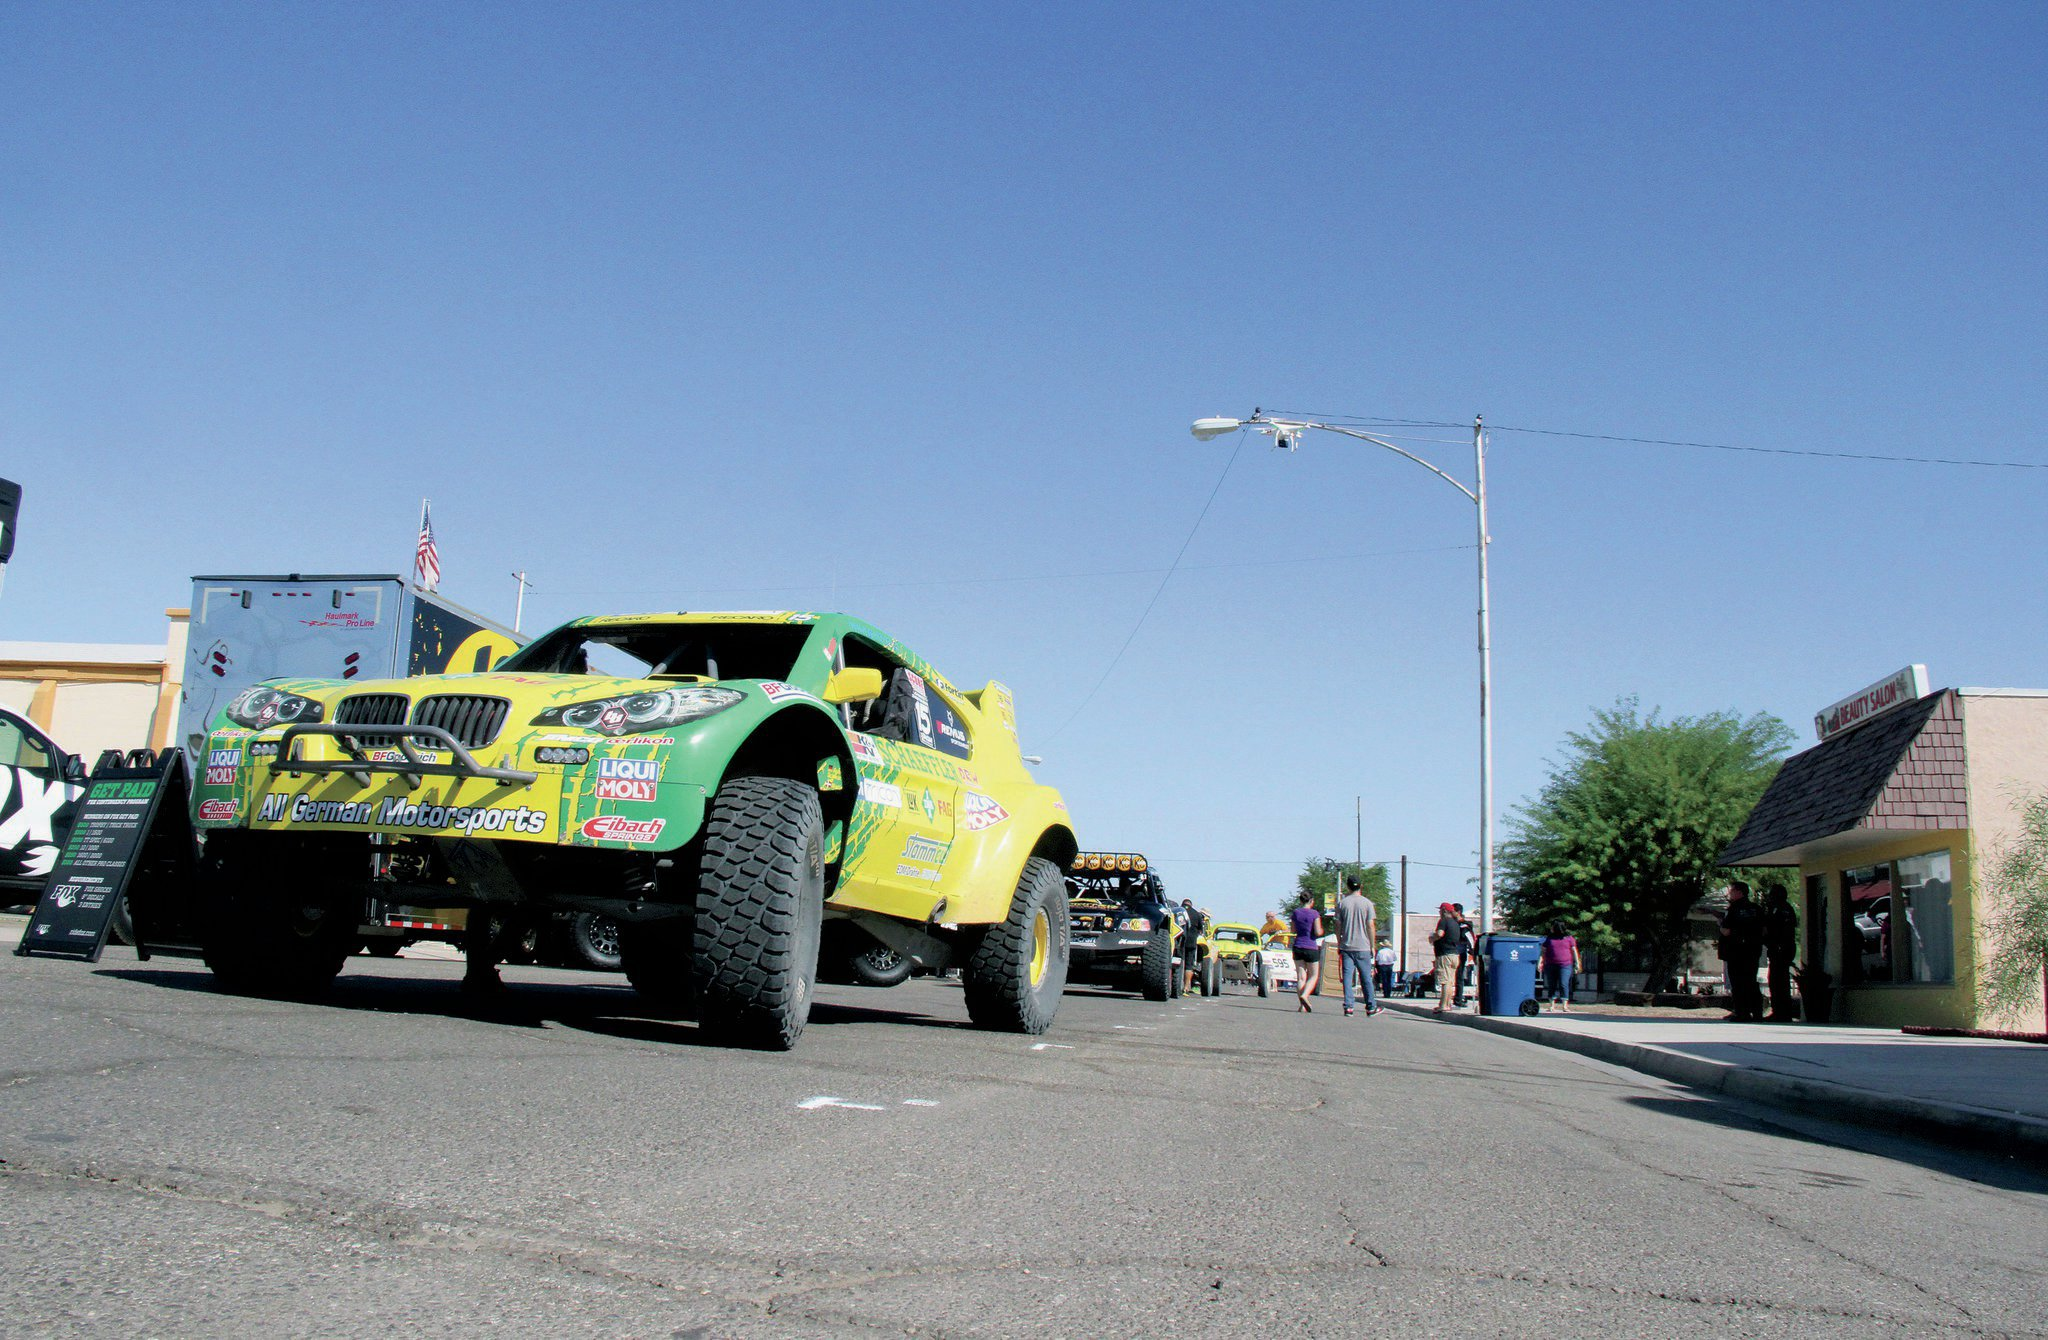 Fans, crews, and vendors braved record-high temperatures during contingency in Imperial.